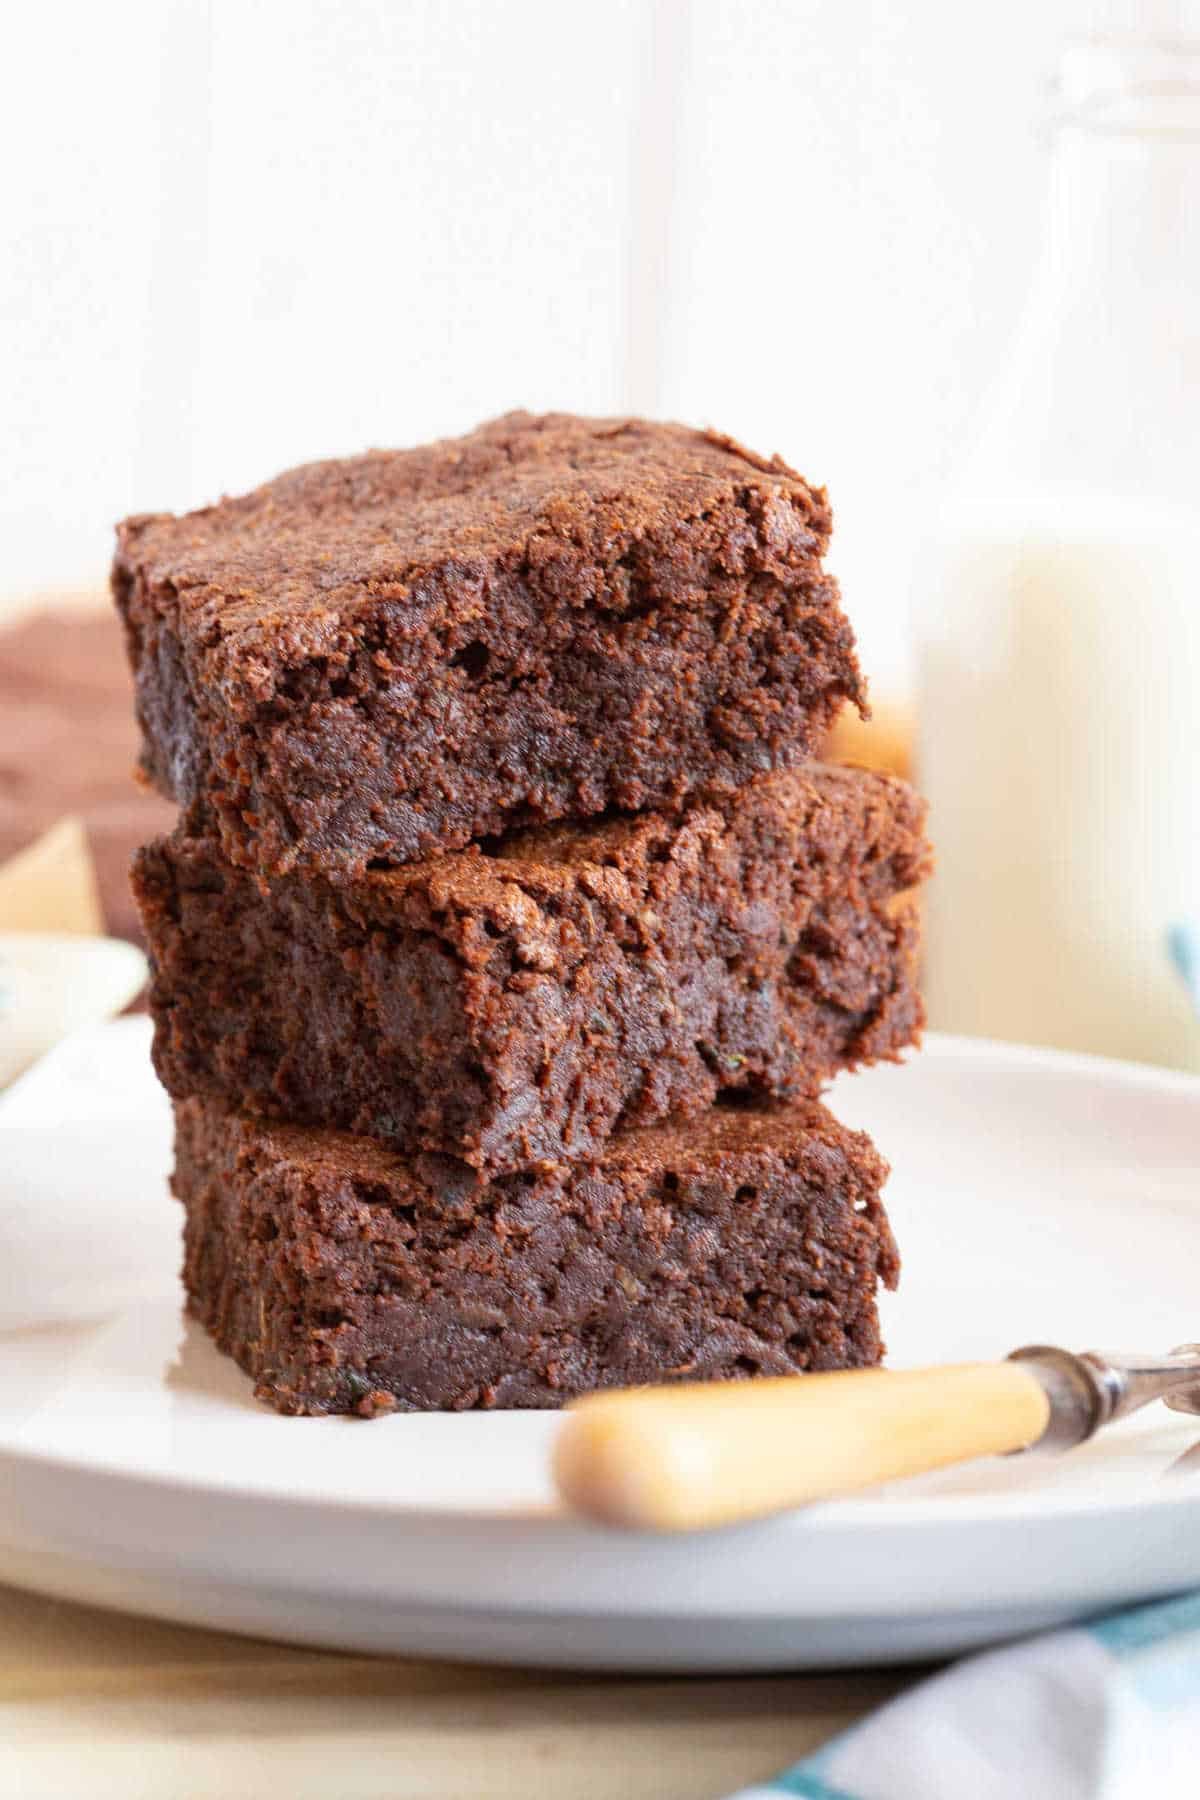 A stack of three courgette brownies on a plate.